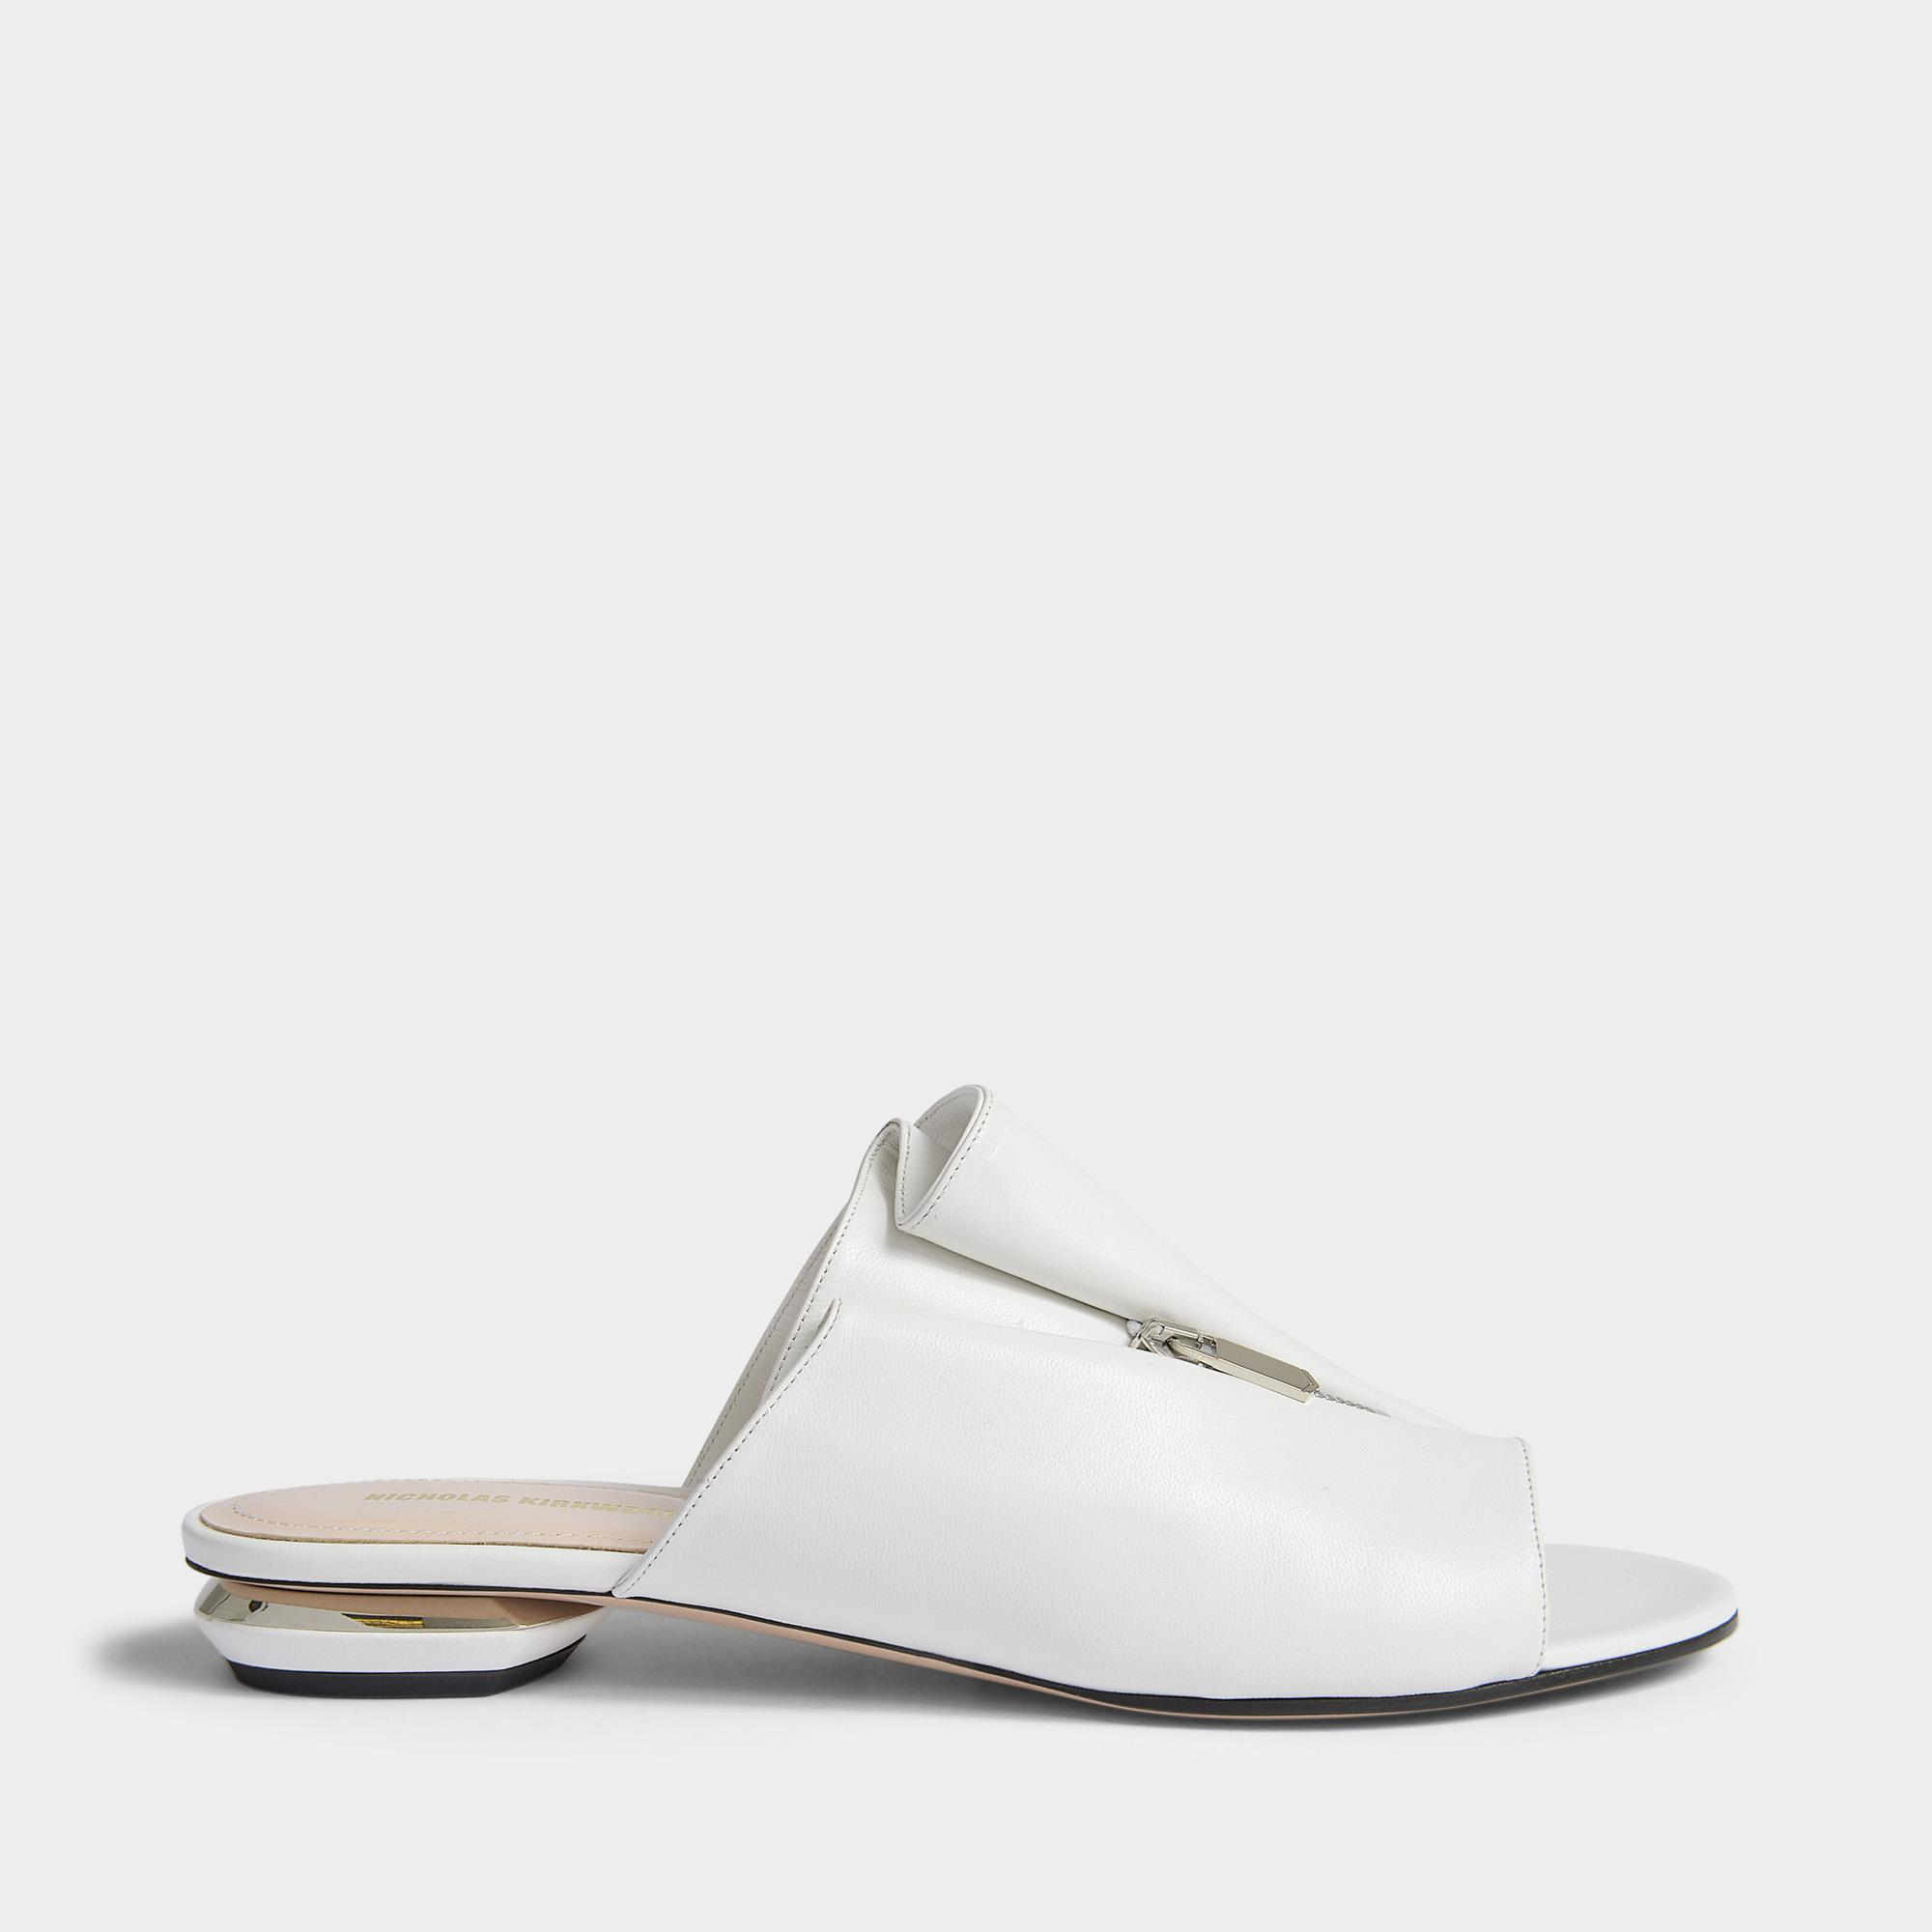 Nicholas Kirkwood Designer Shoes, 18mm Leather Kristen Mules